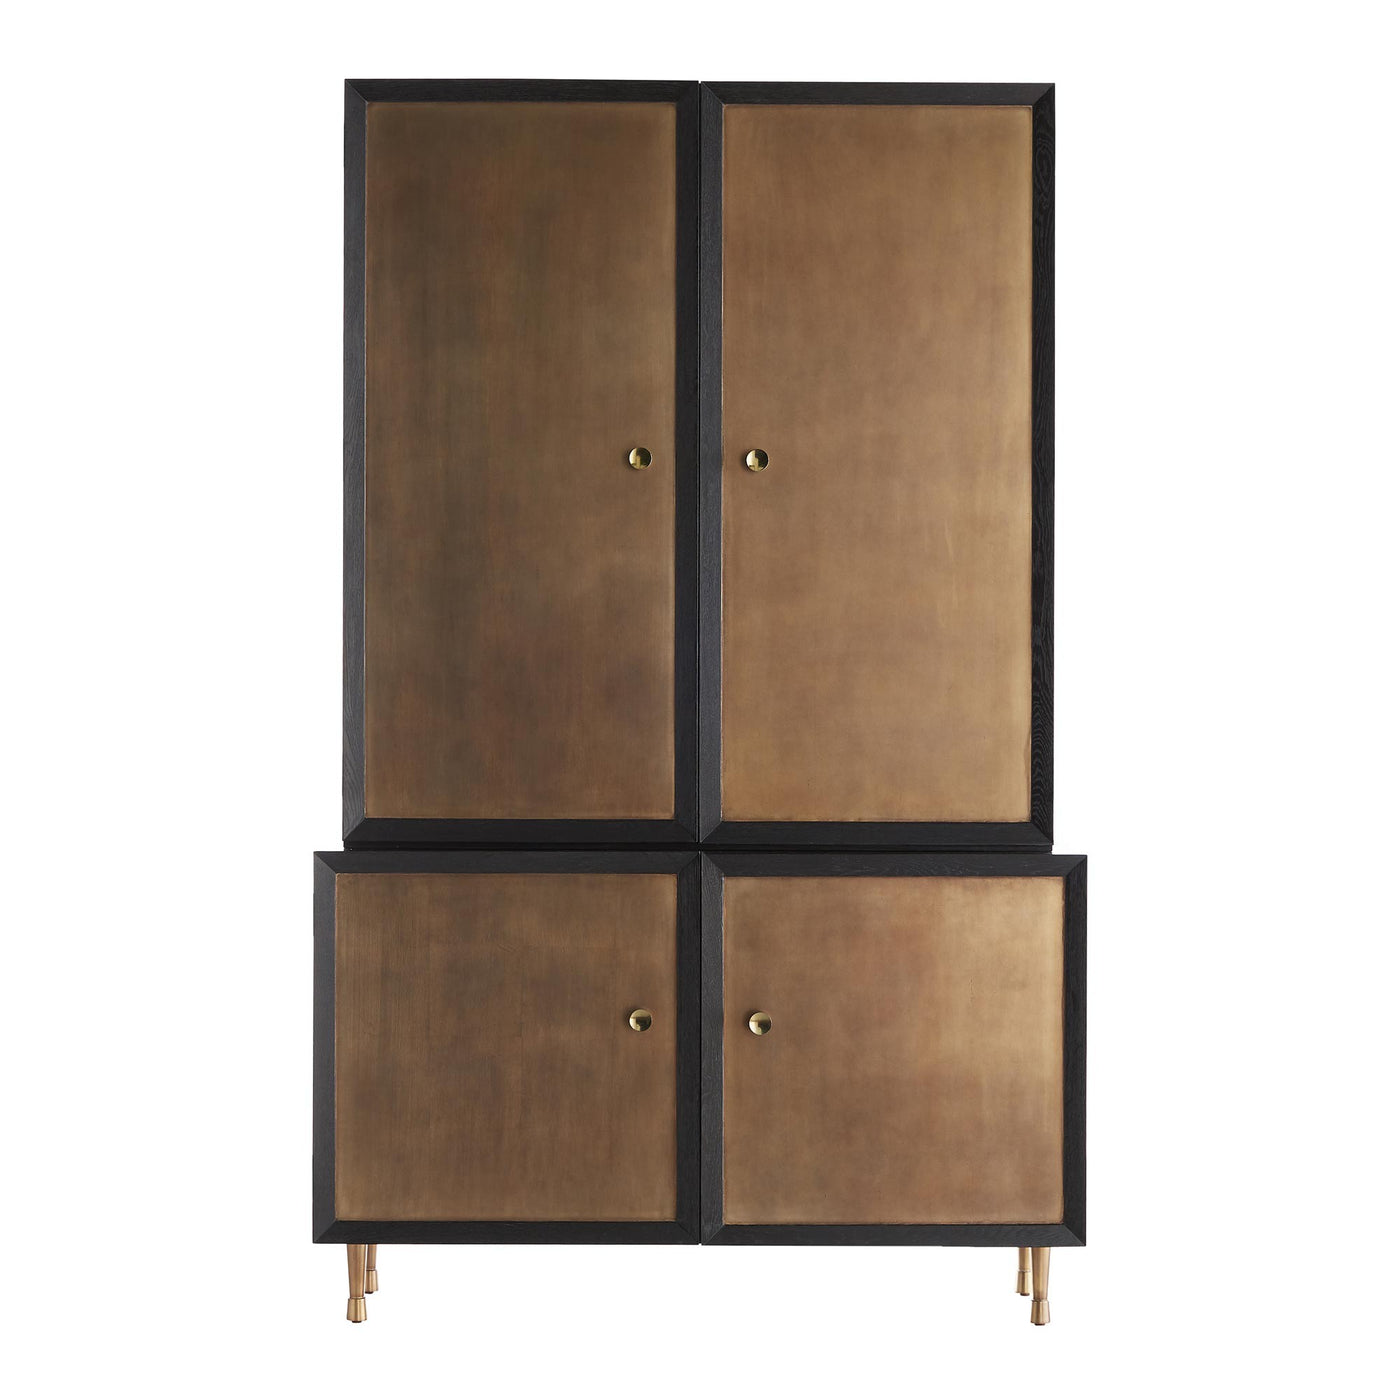 Arteriors Home Kilpatrick Tall Cabinet Gold Black Ebony Oak